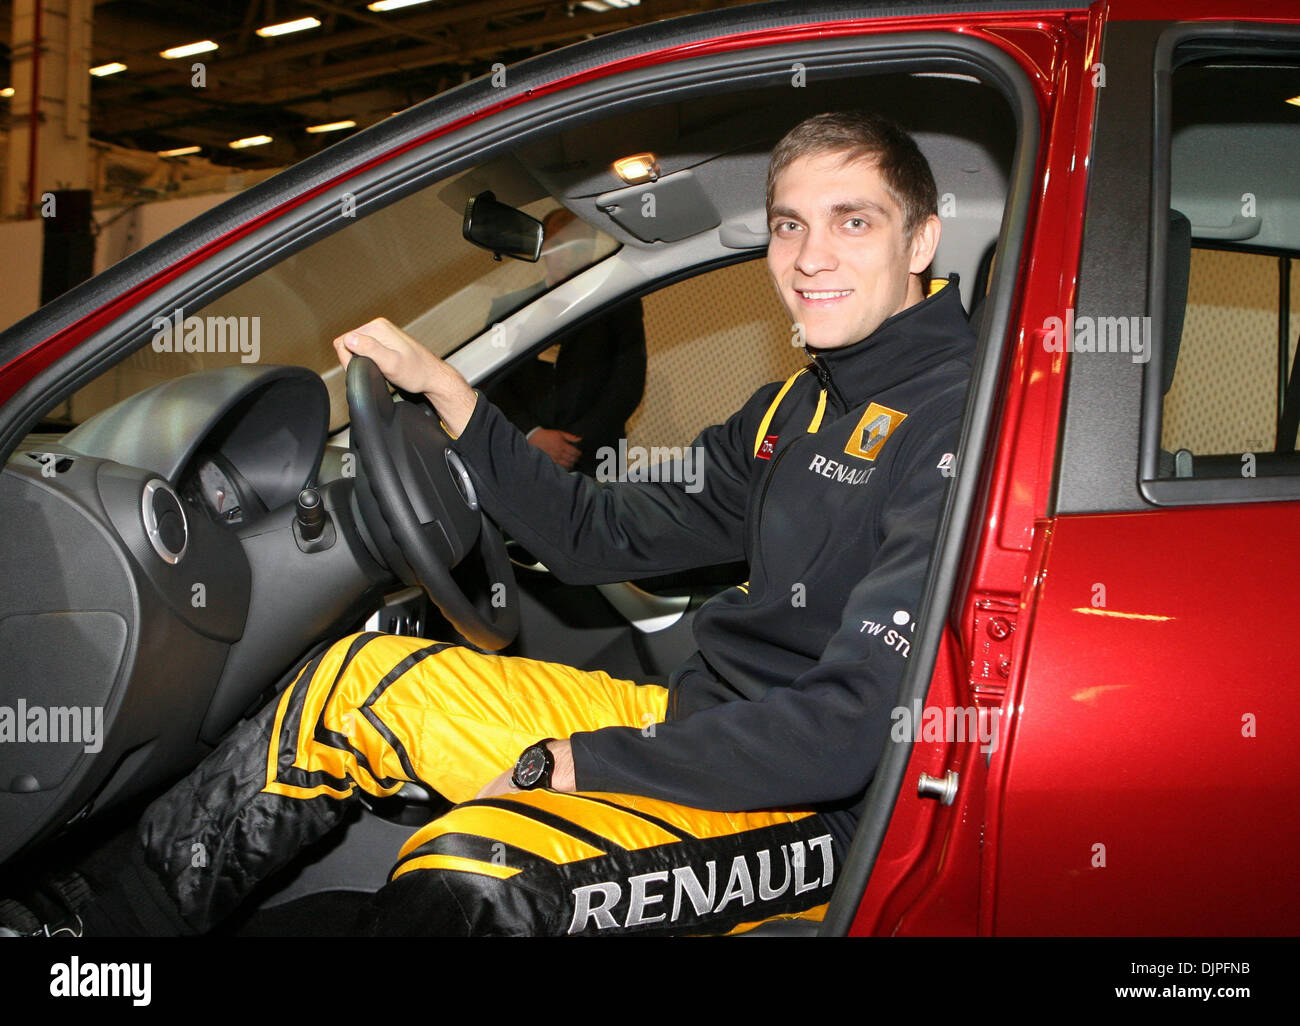 Mar 01, 2010 - Moscow, Russia - VITALY PETROV, Russian Formula One driver for the Renault F1 team pictured at Avtoframos car plant in Moscow. Vitaly Petrov is the first Russian driver to take part in the Formula One World Championship. (Credit Image: © PhotoXpress/ZUMA Press) - Stock Image